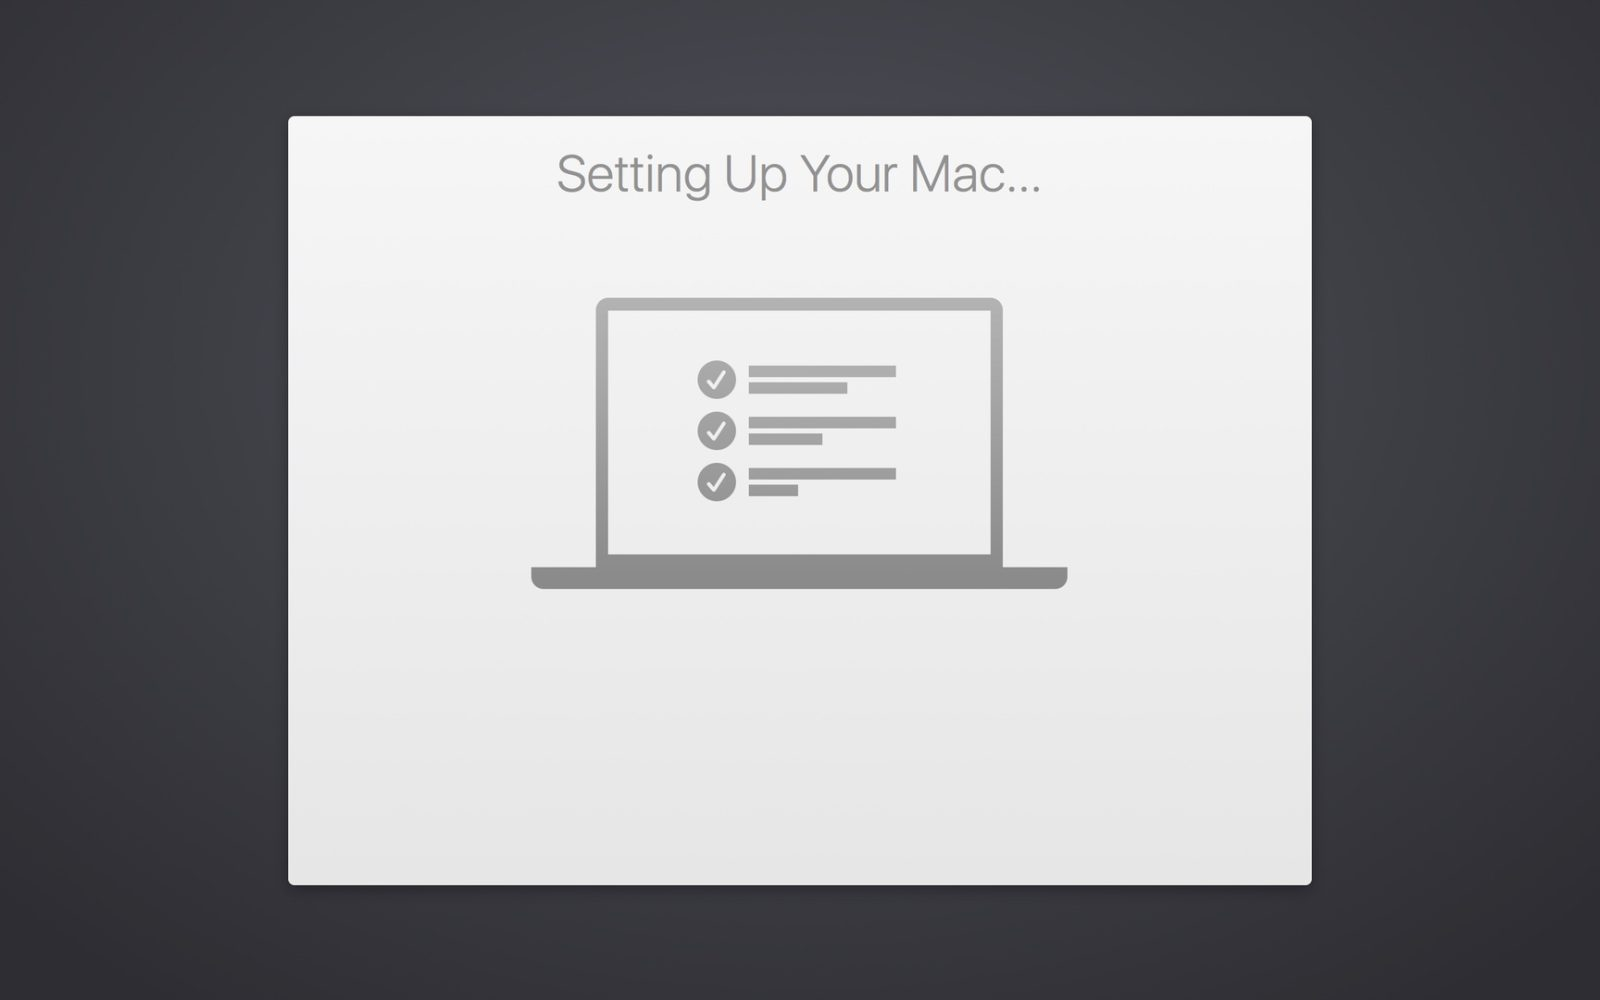 How-To: 10 getting started tips for new Mac users [Video]